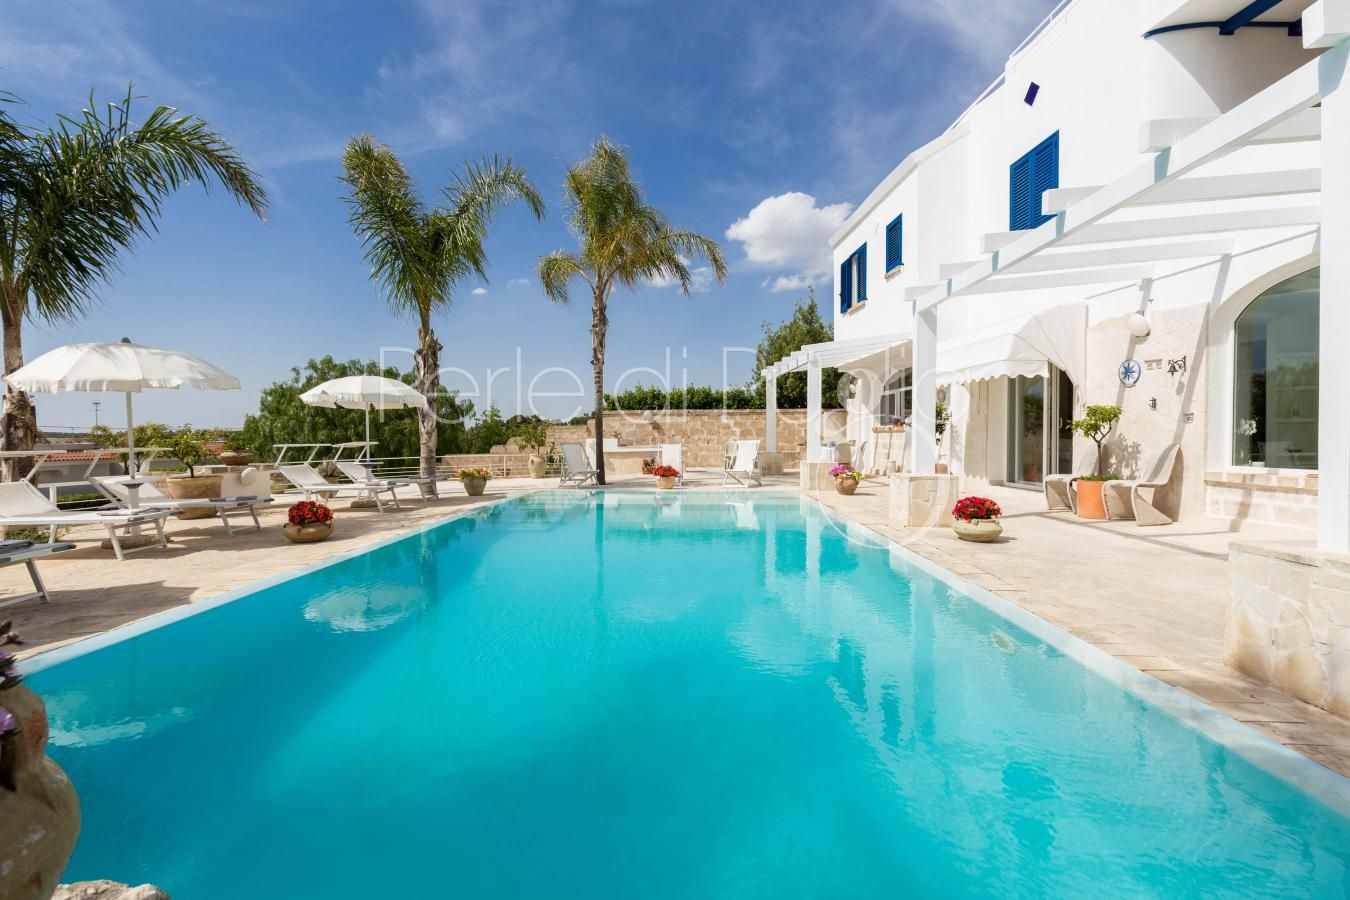 Villa SoleLuna is a holiday villa in Puglia, with swimming